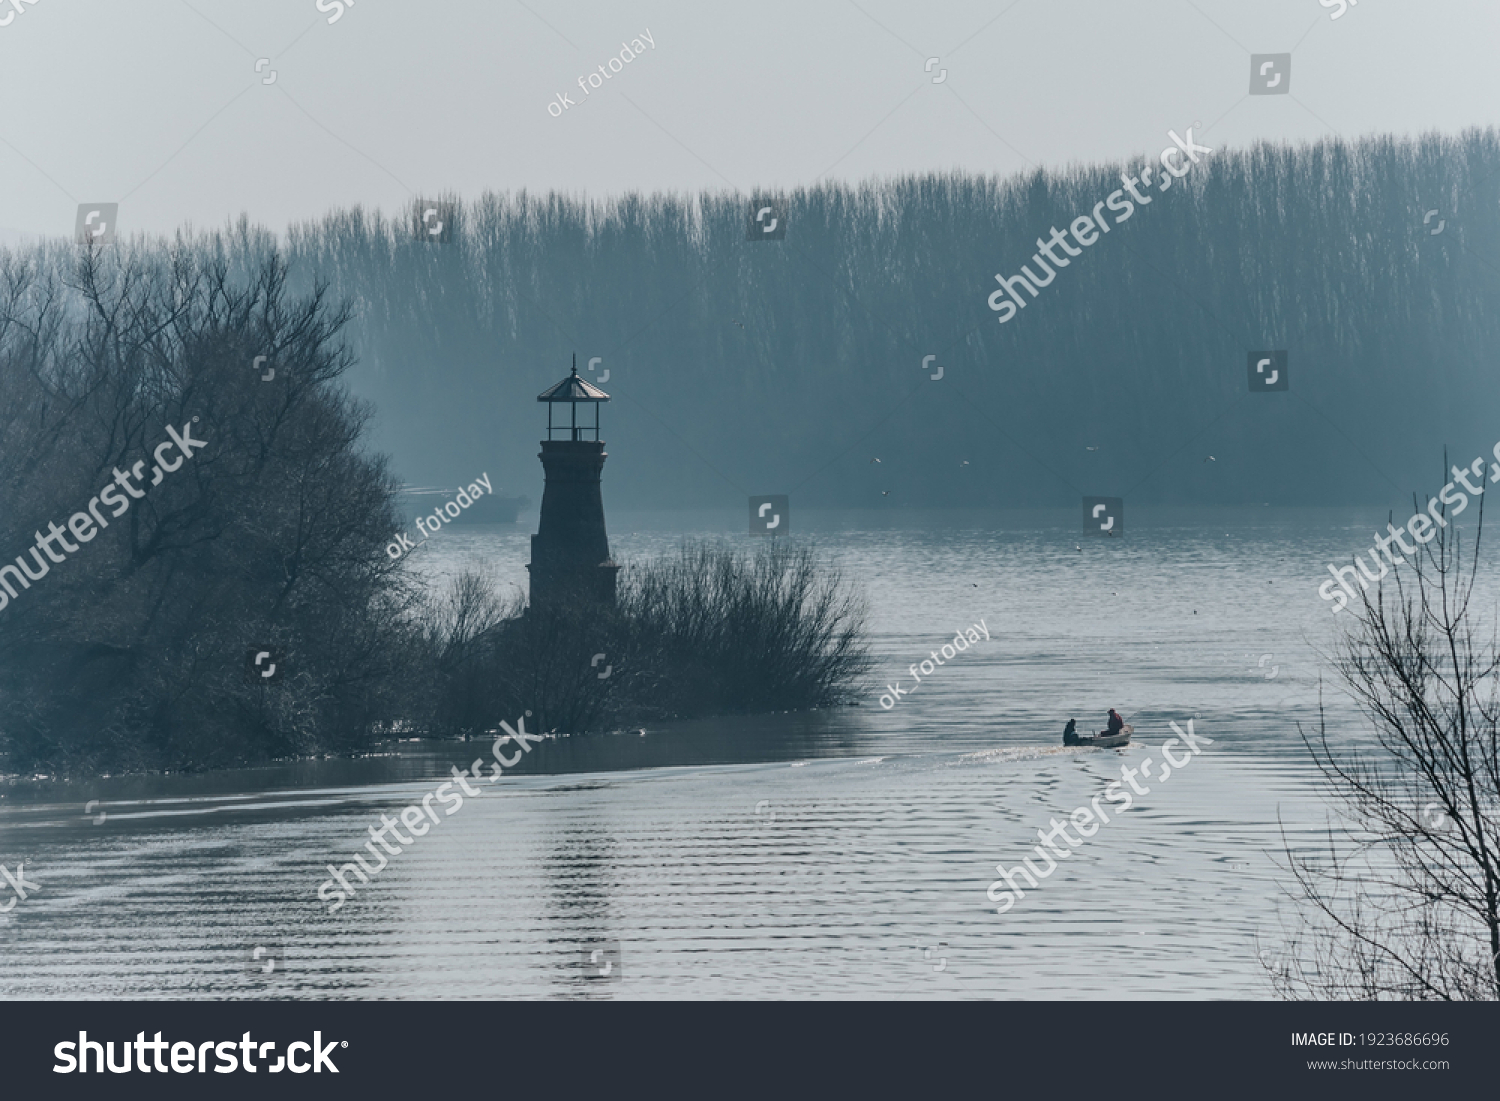 Beautiful mystical landscape on the river, in the distance a lighthouse and a small boat with people in backlight and a slight haze over the water